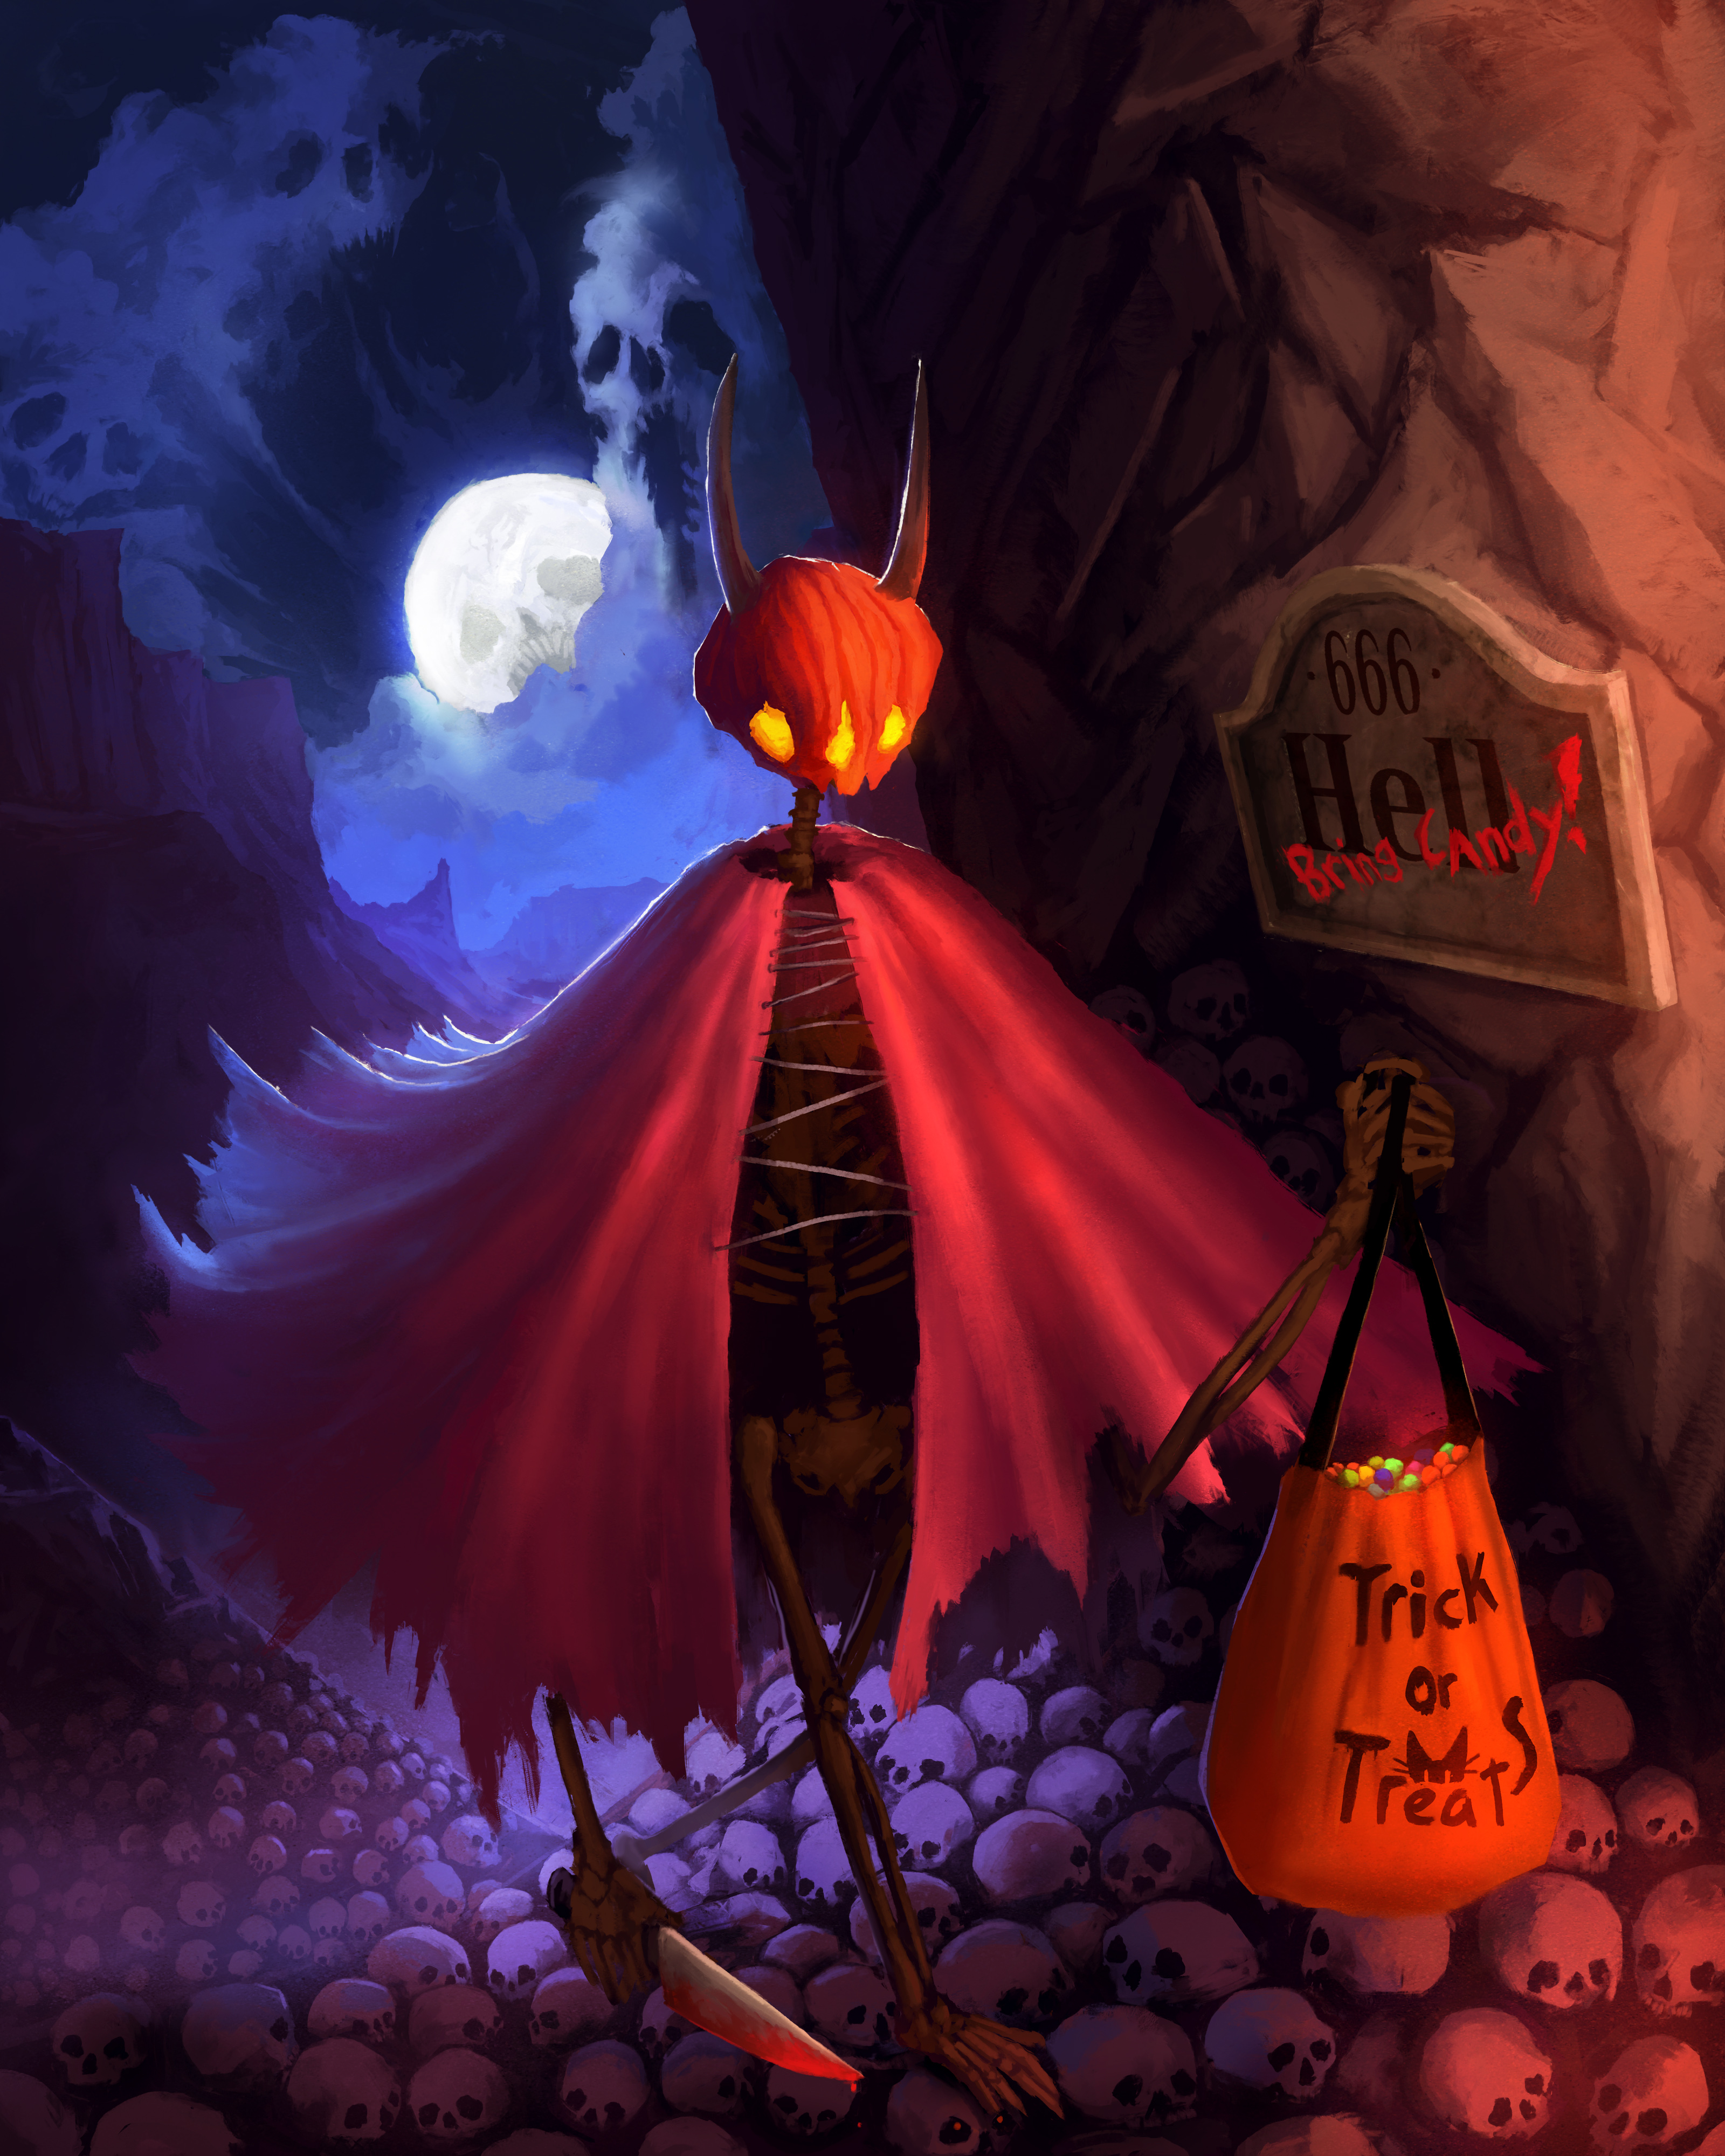 End of Halloween